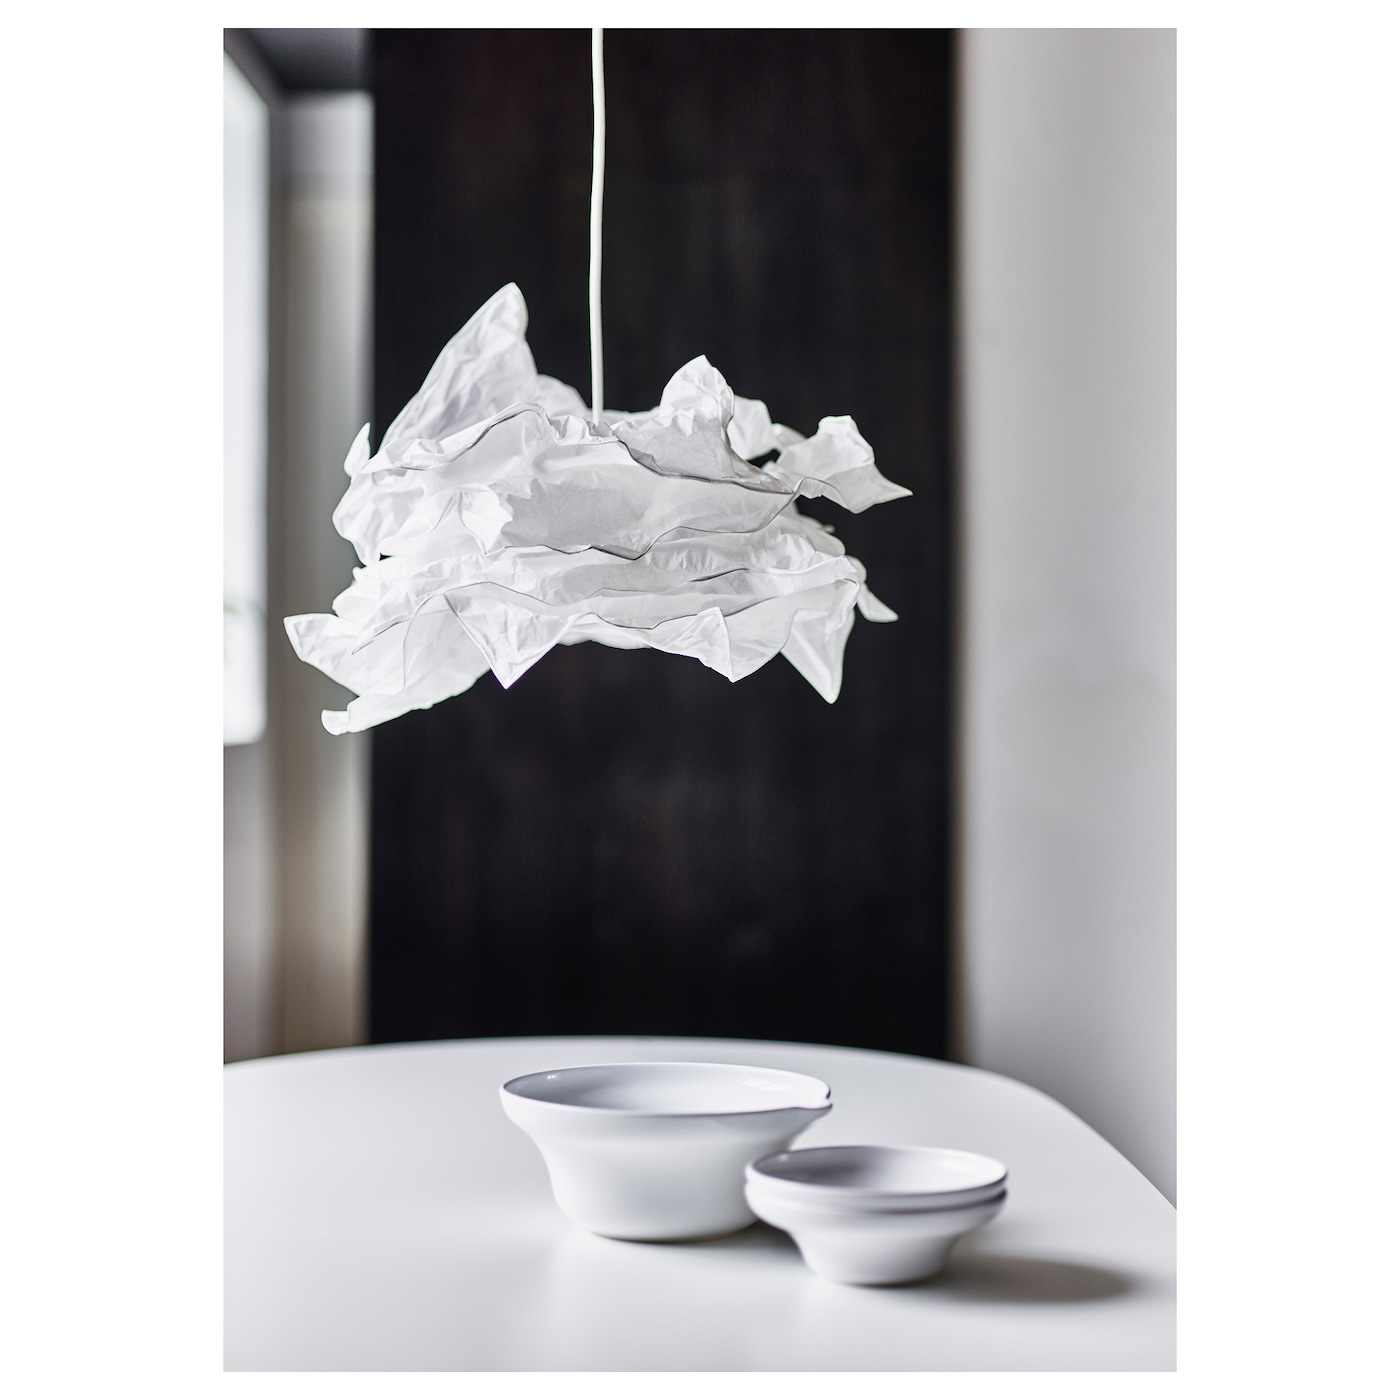 krusning pendant lamp shade white 43 cm ikea. Black Bedroom Furniture Sets. Home Design Ideas